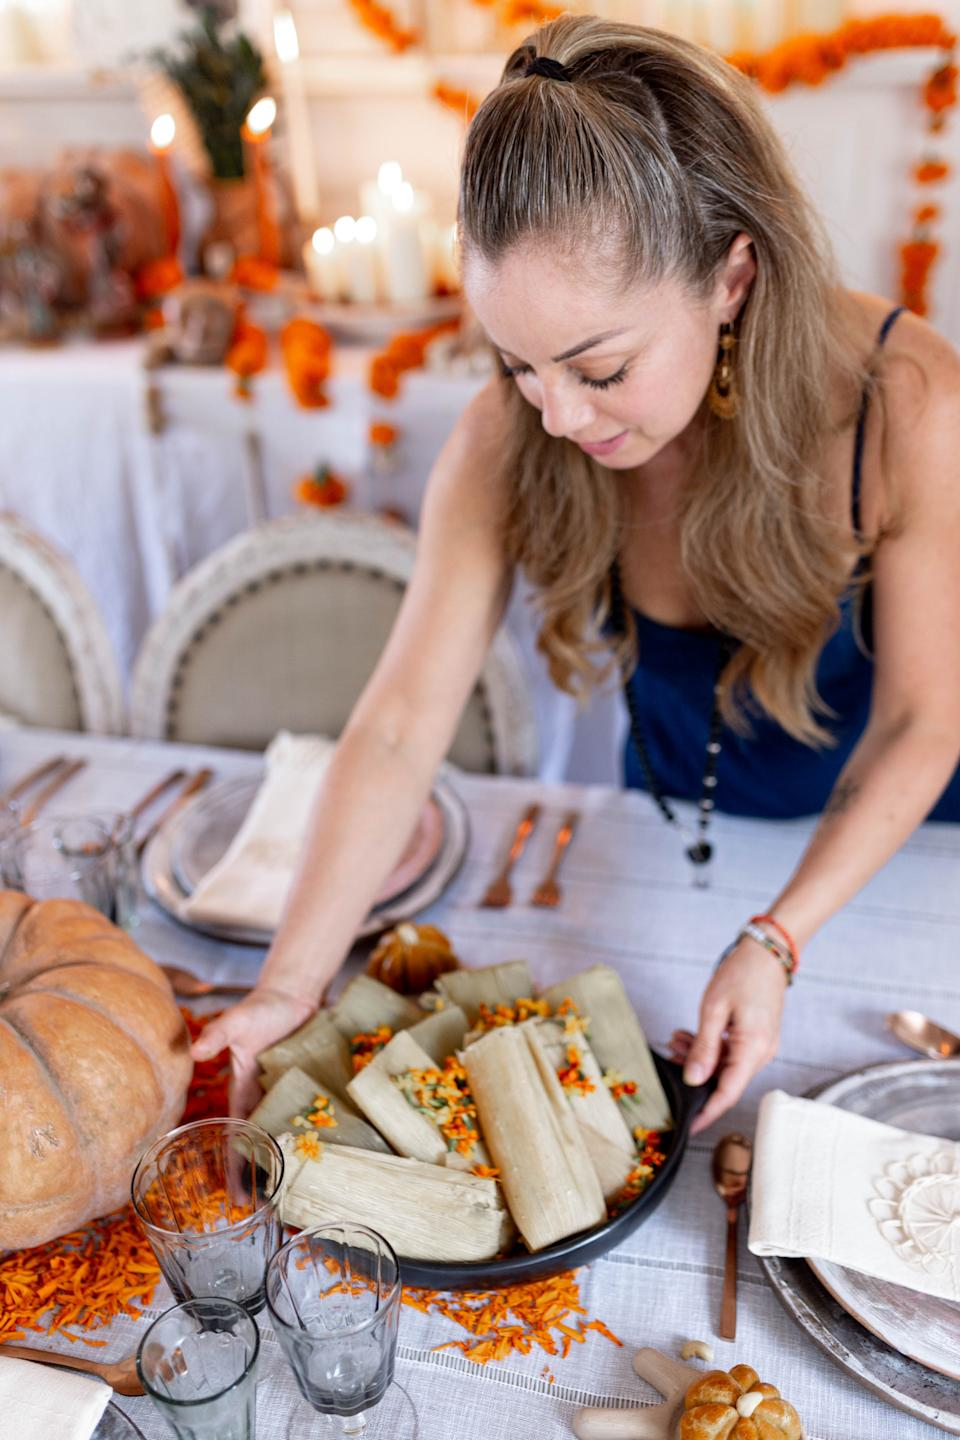 Valladolid places a plate of tamales on the table in front of her ofrenda. (Photo: Cecilia Martin Del Campo)